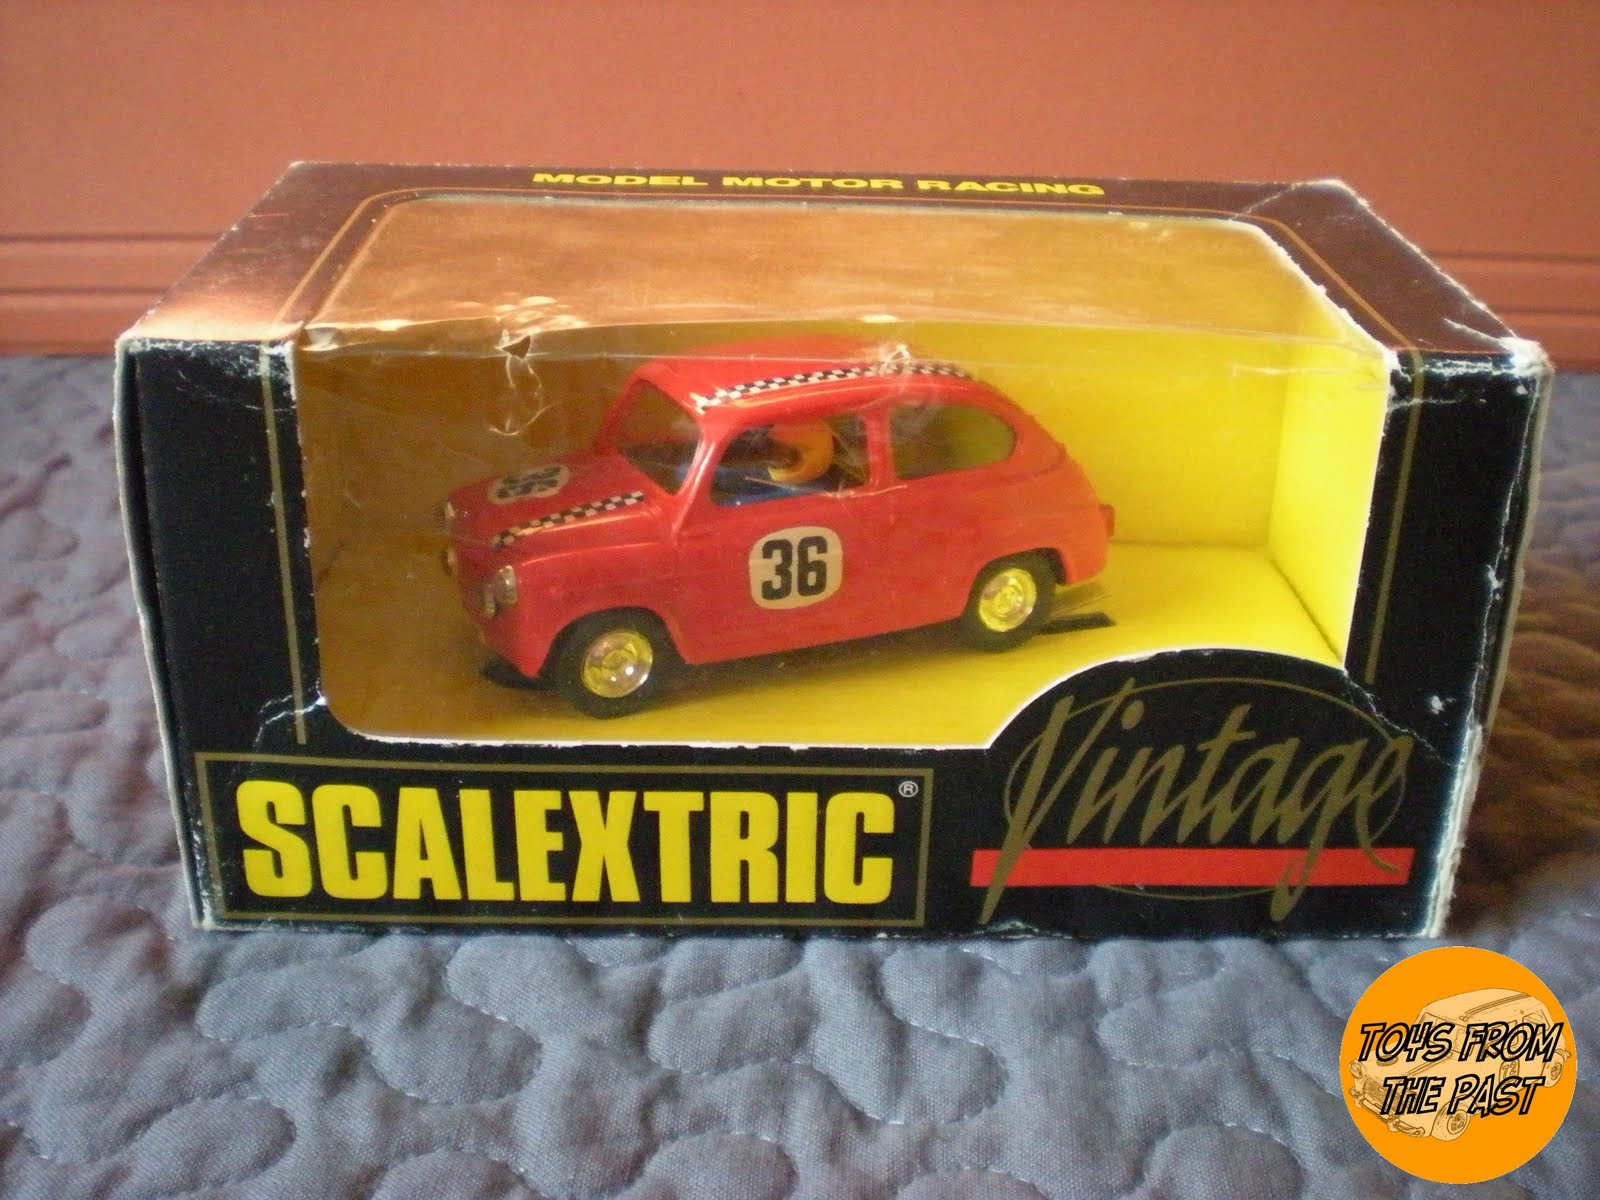 Toys From The Past : Toys from the past scalextric seat tc vintage